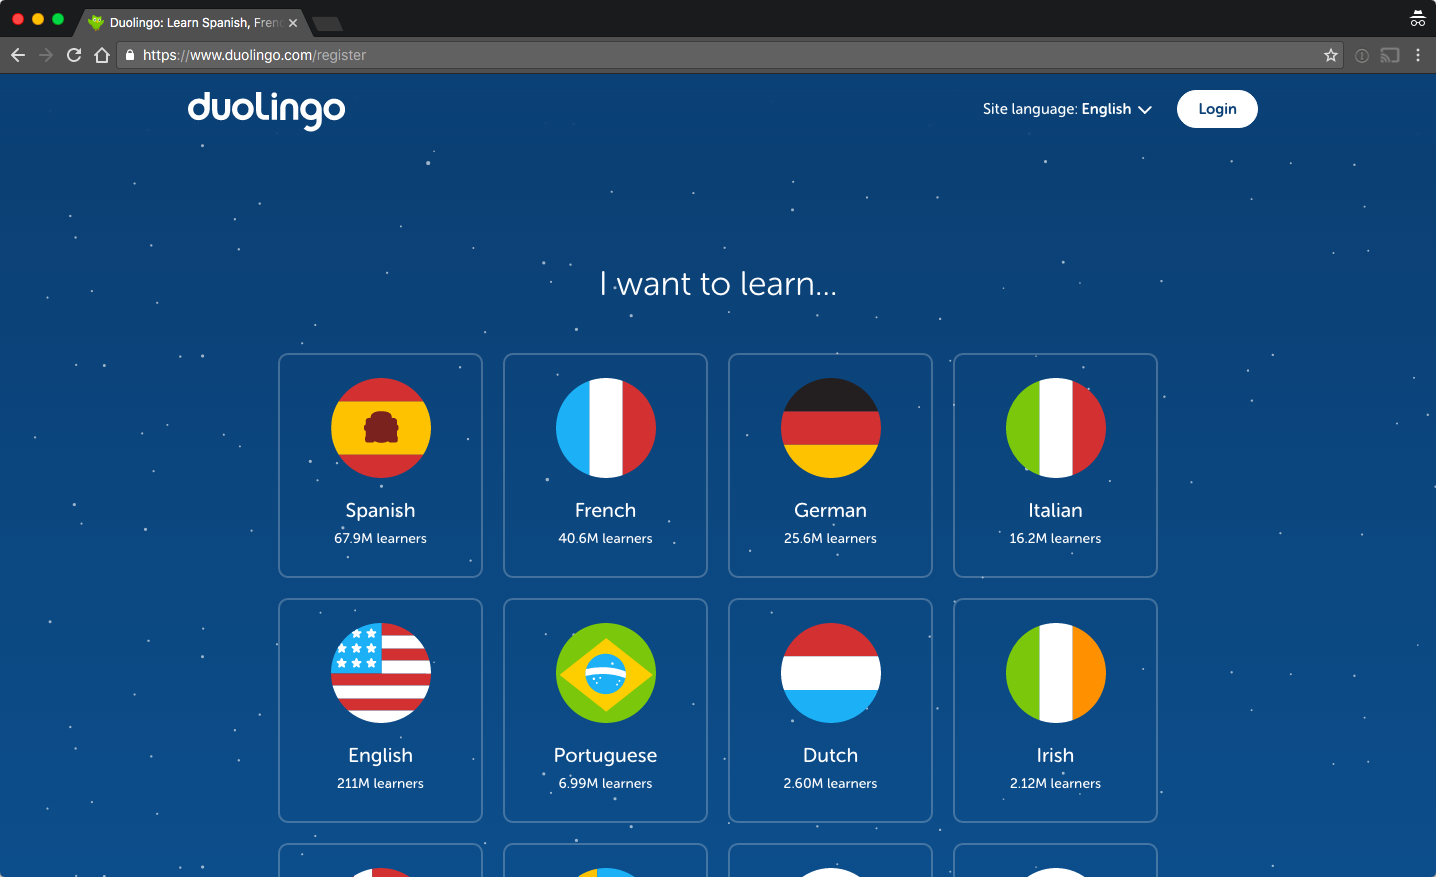 duolingo-learn-spanish-french-and-other-languages-for-free-2016-10-02-02-52-25